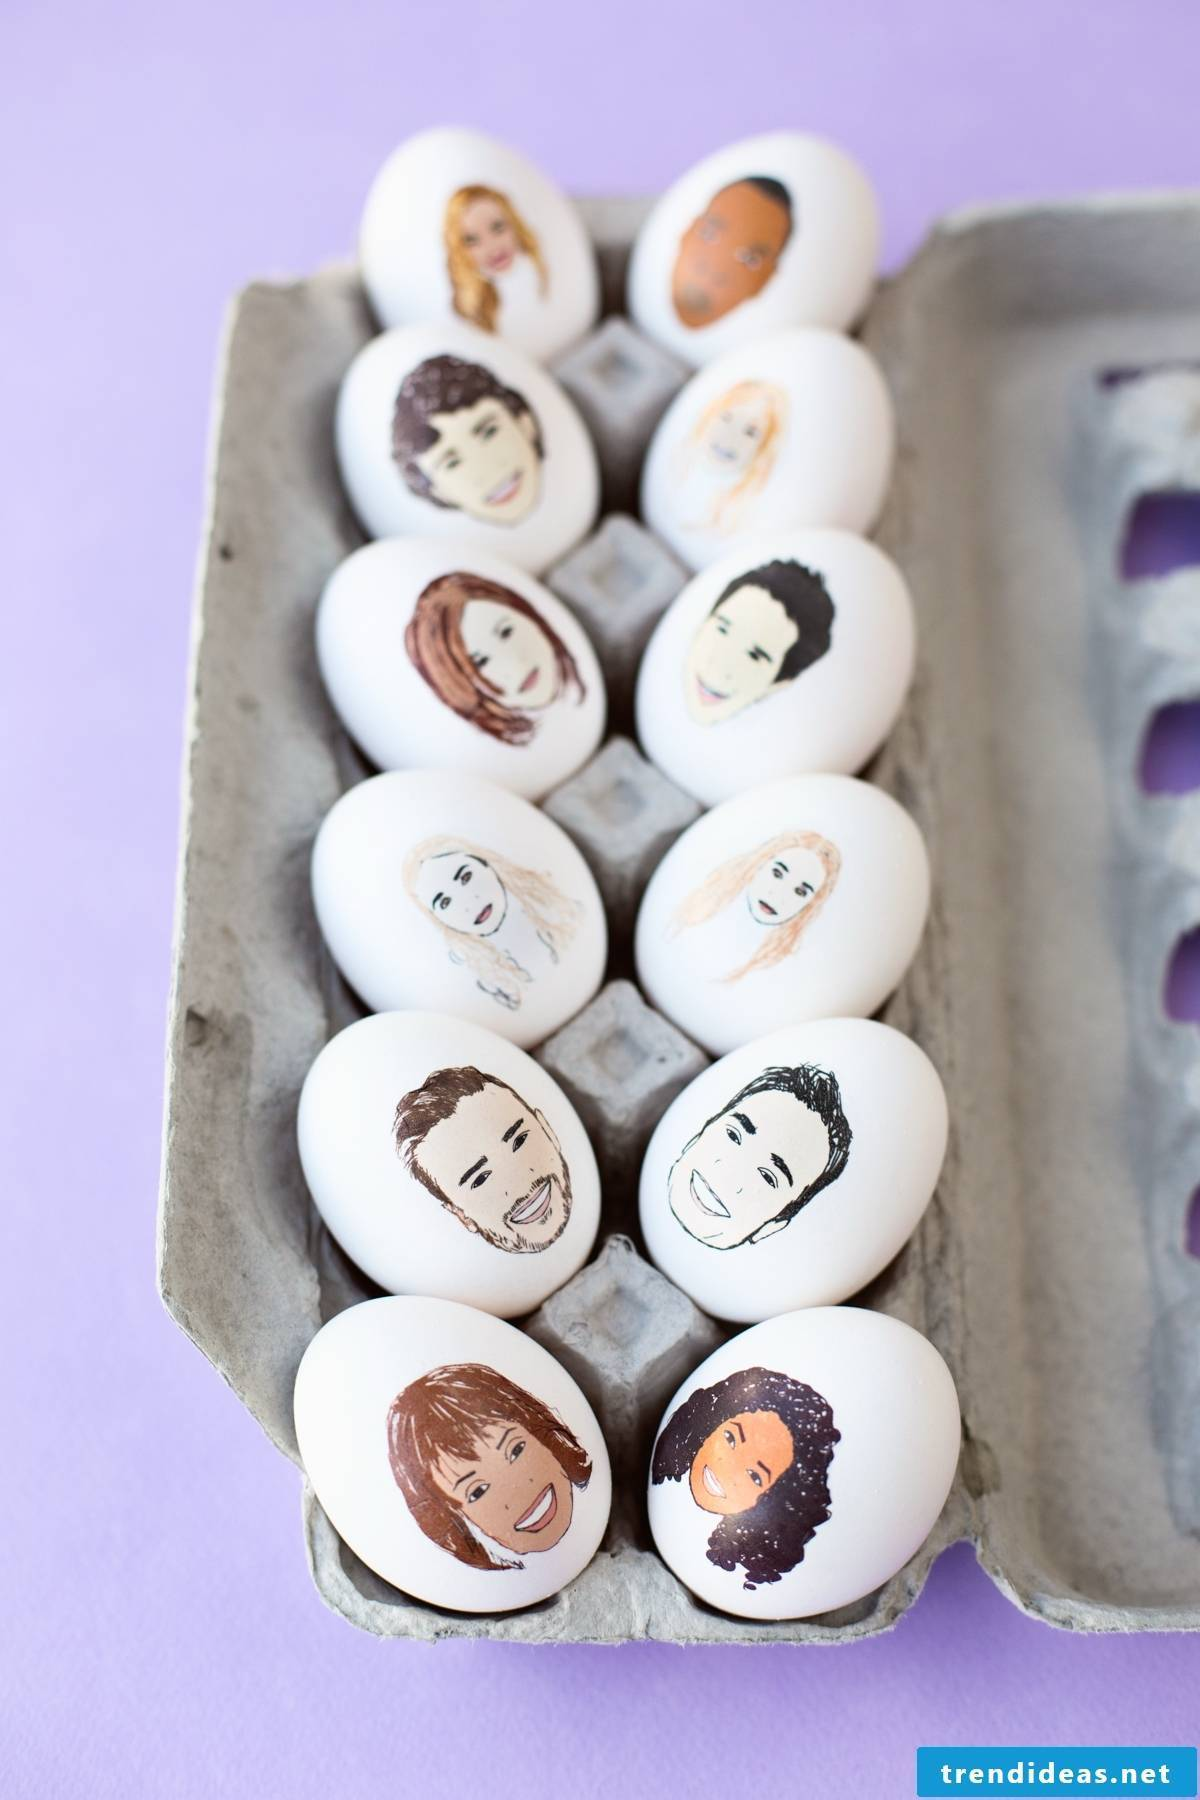 Easter eggs with celebrities faces